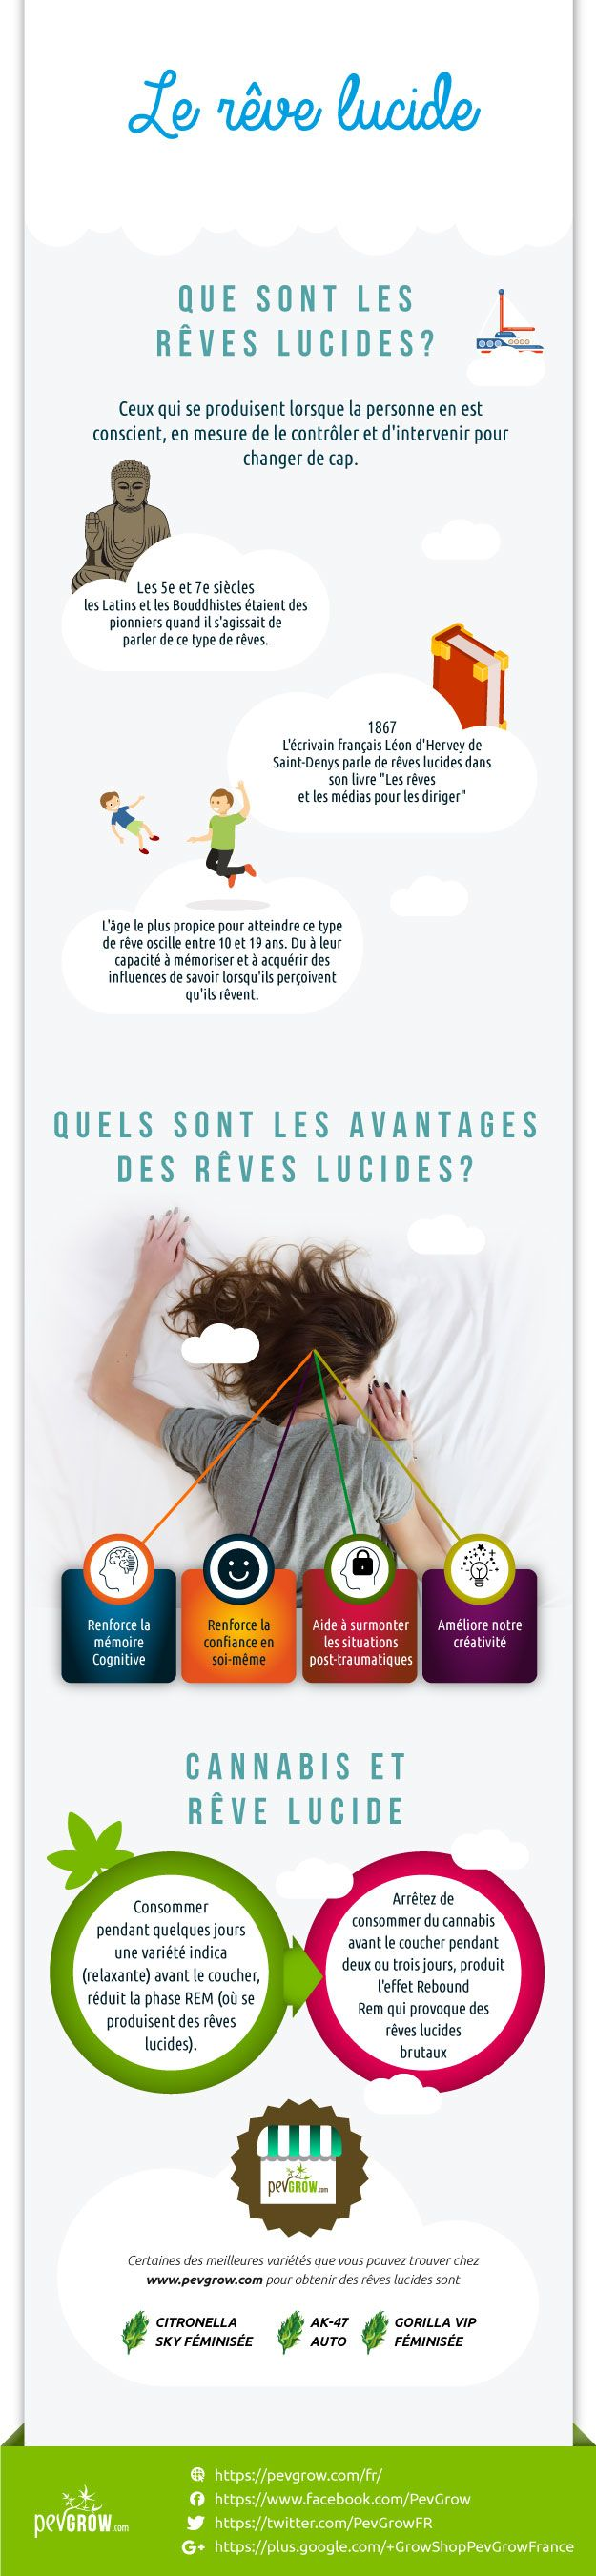 Infographie rêve lucide